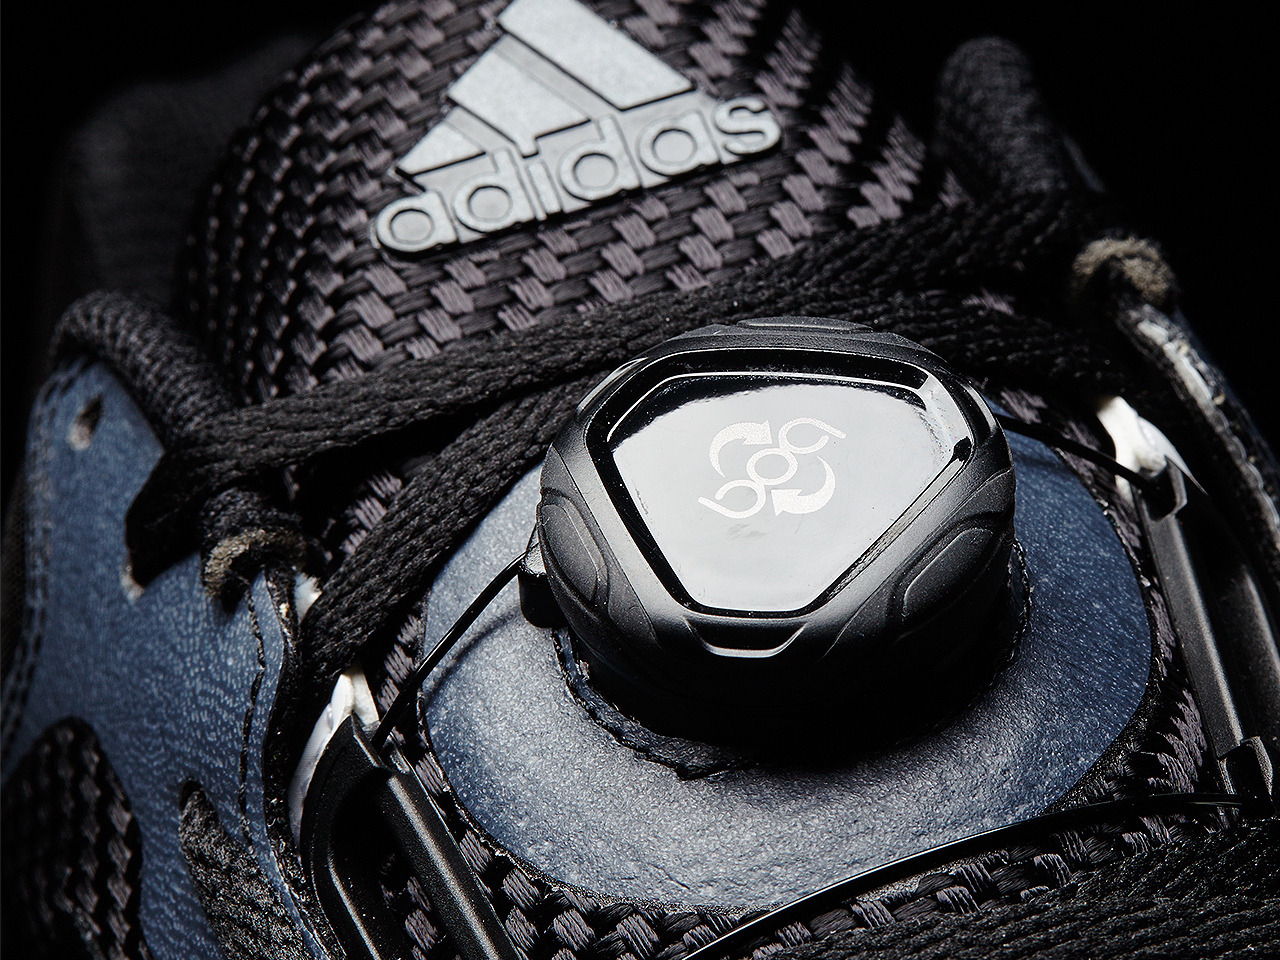 8f72842de878 Here s a close look at Adidas  Leistung 16.II and Crazy Power ...